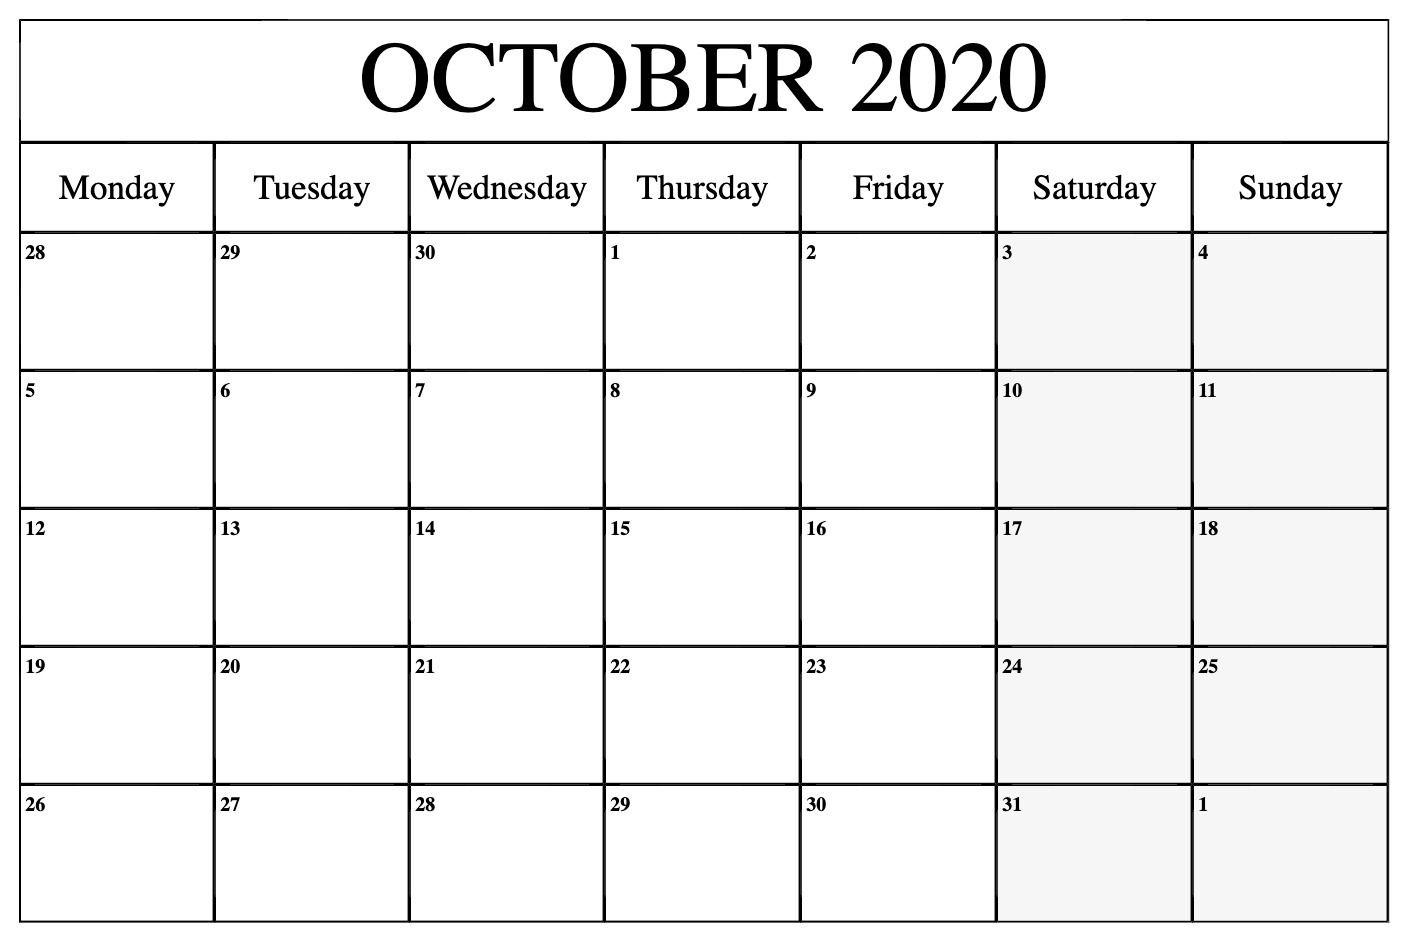 Printable October 2020 Calendar Template - Download Now Calendar Template That Can Be Edited